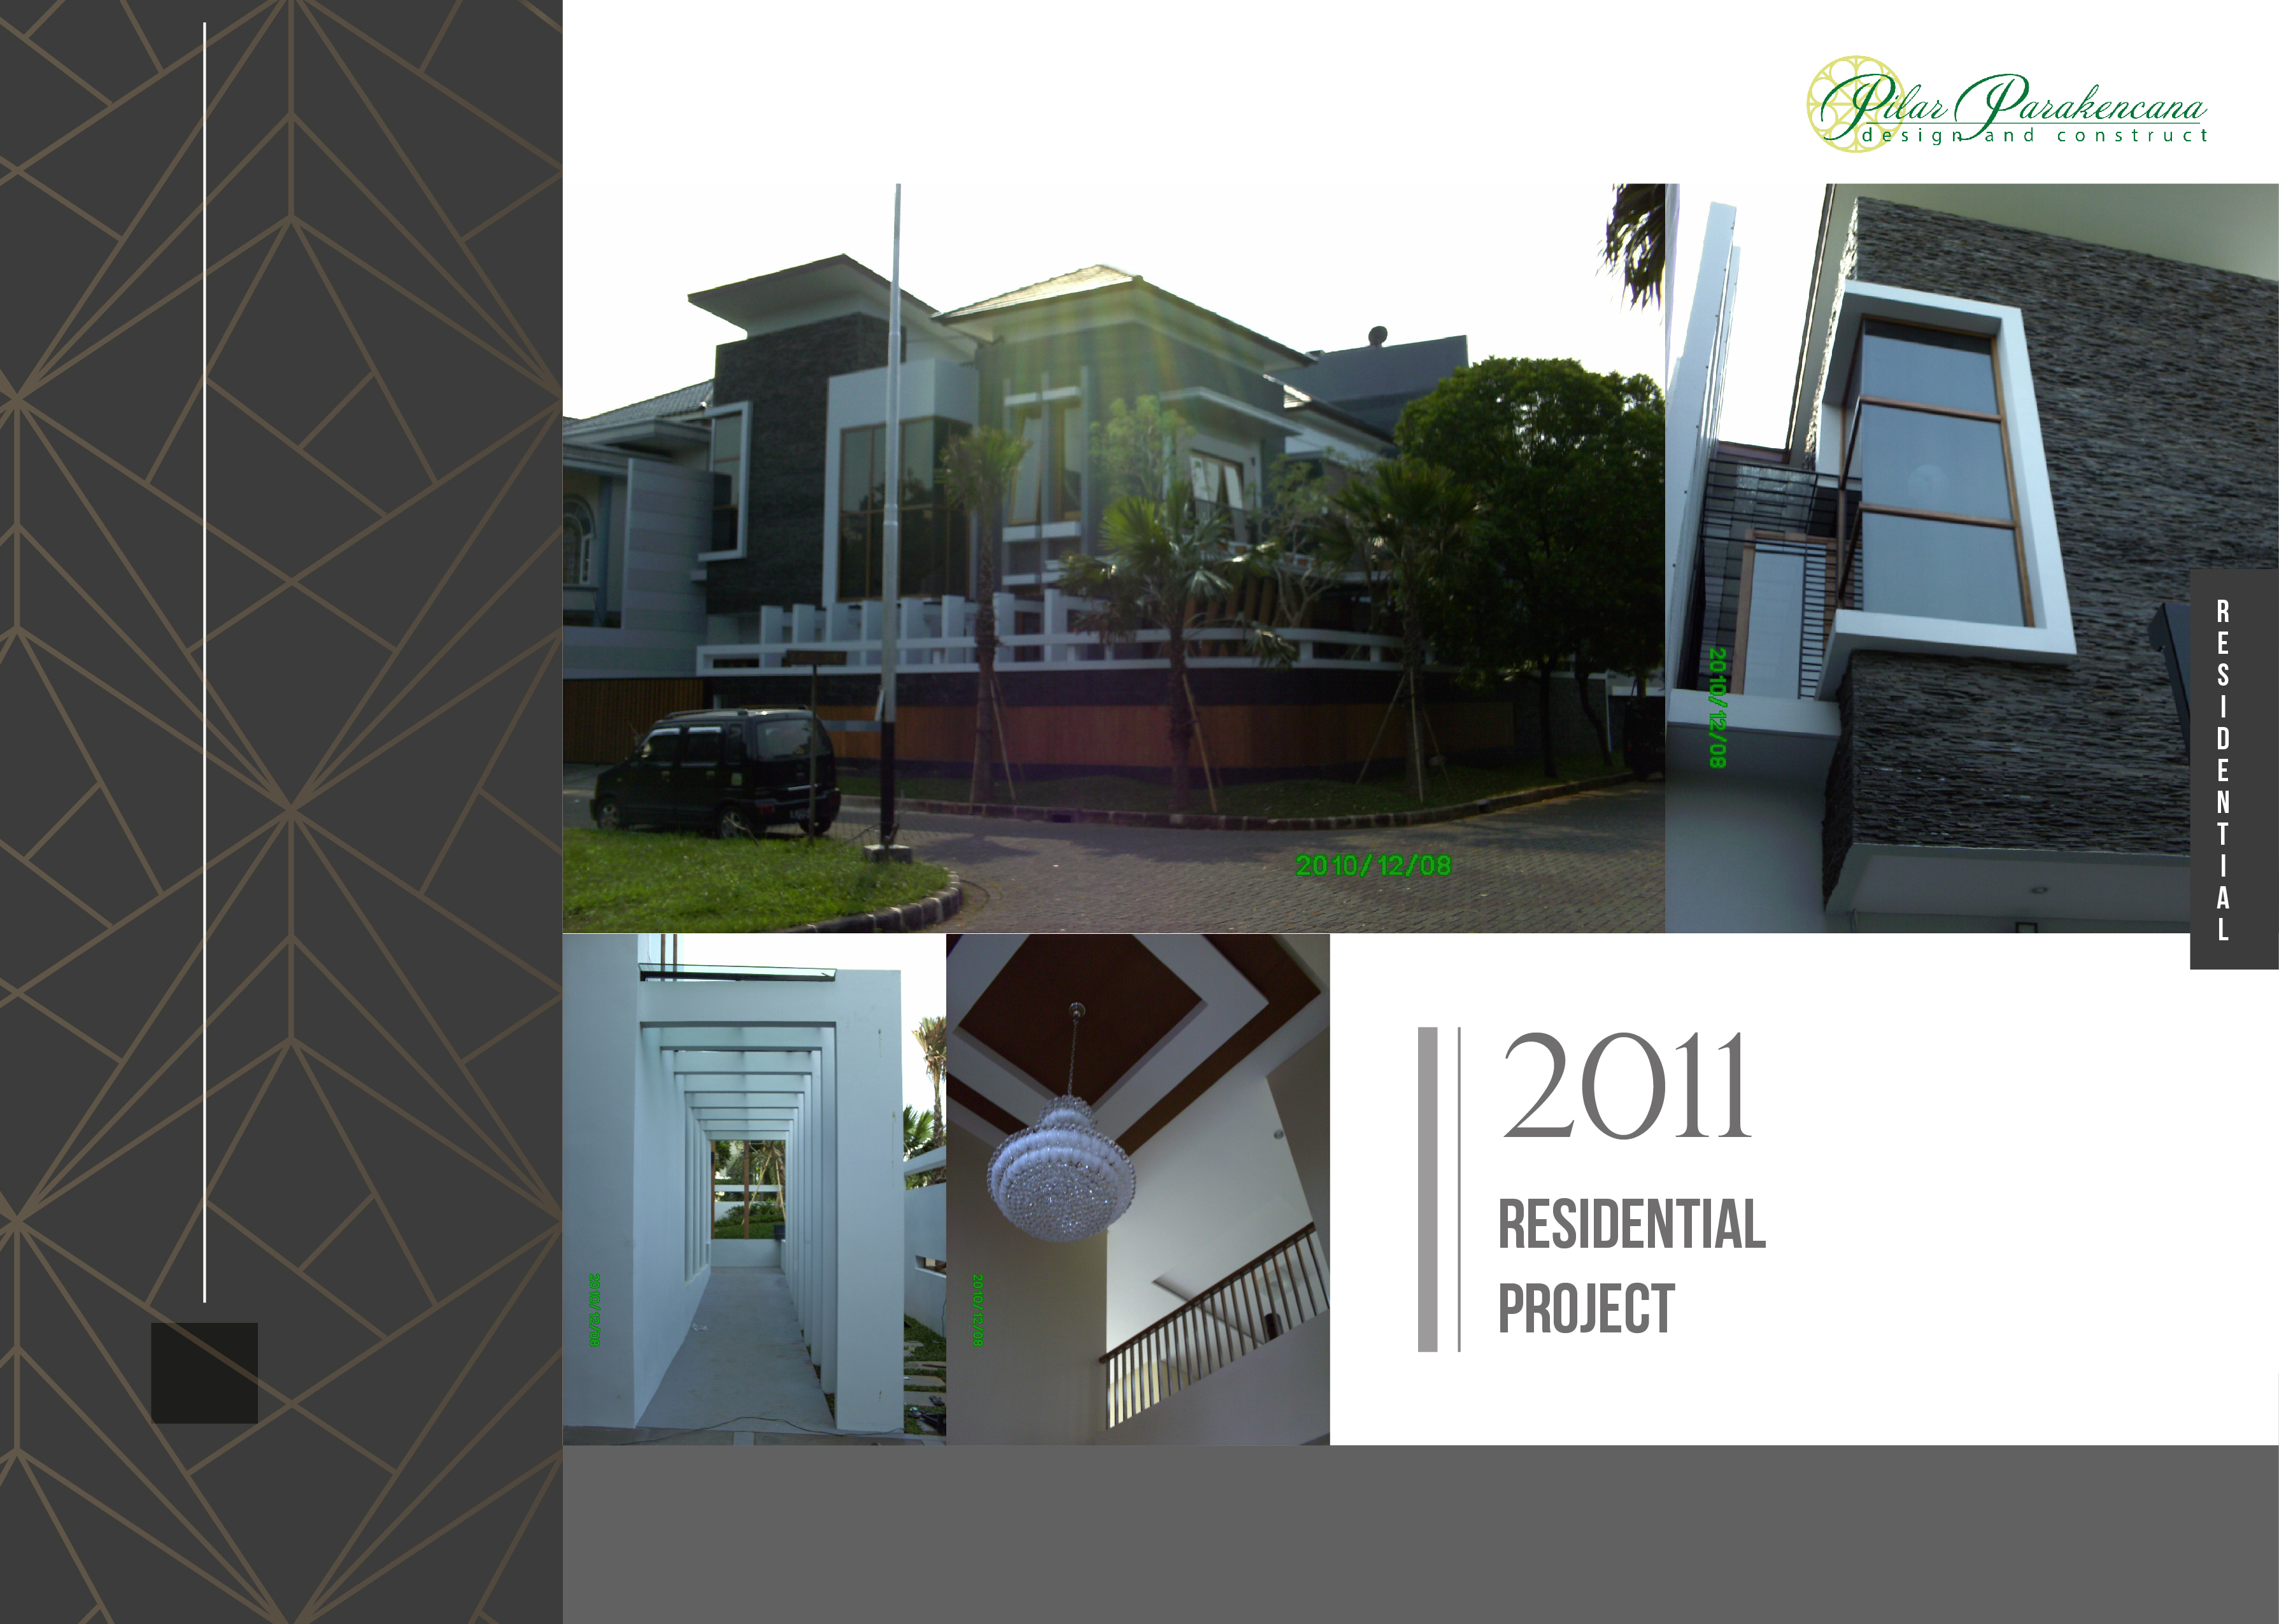 Residential Project - 2011